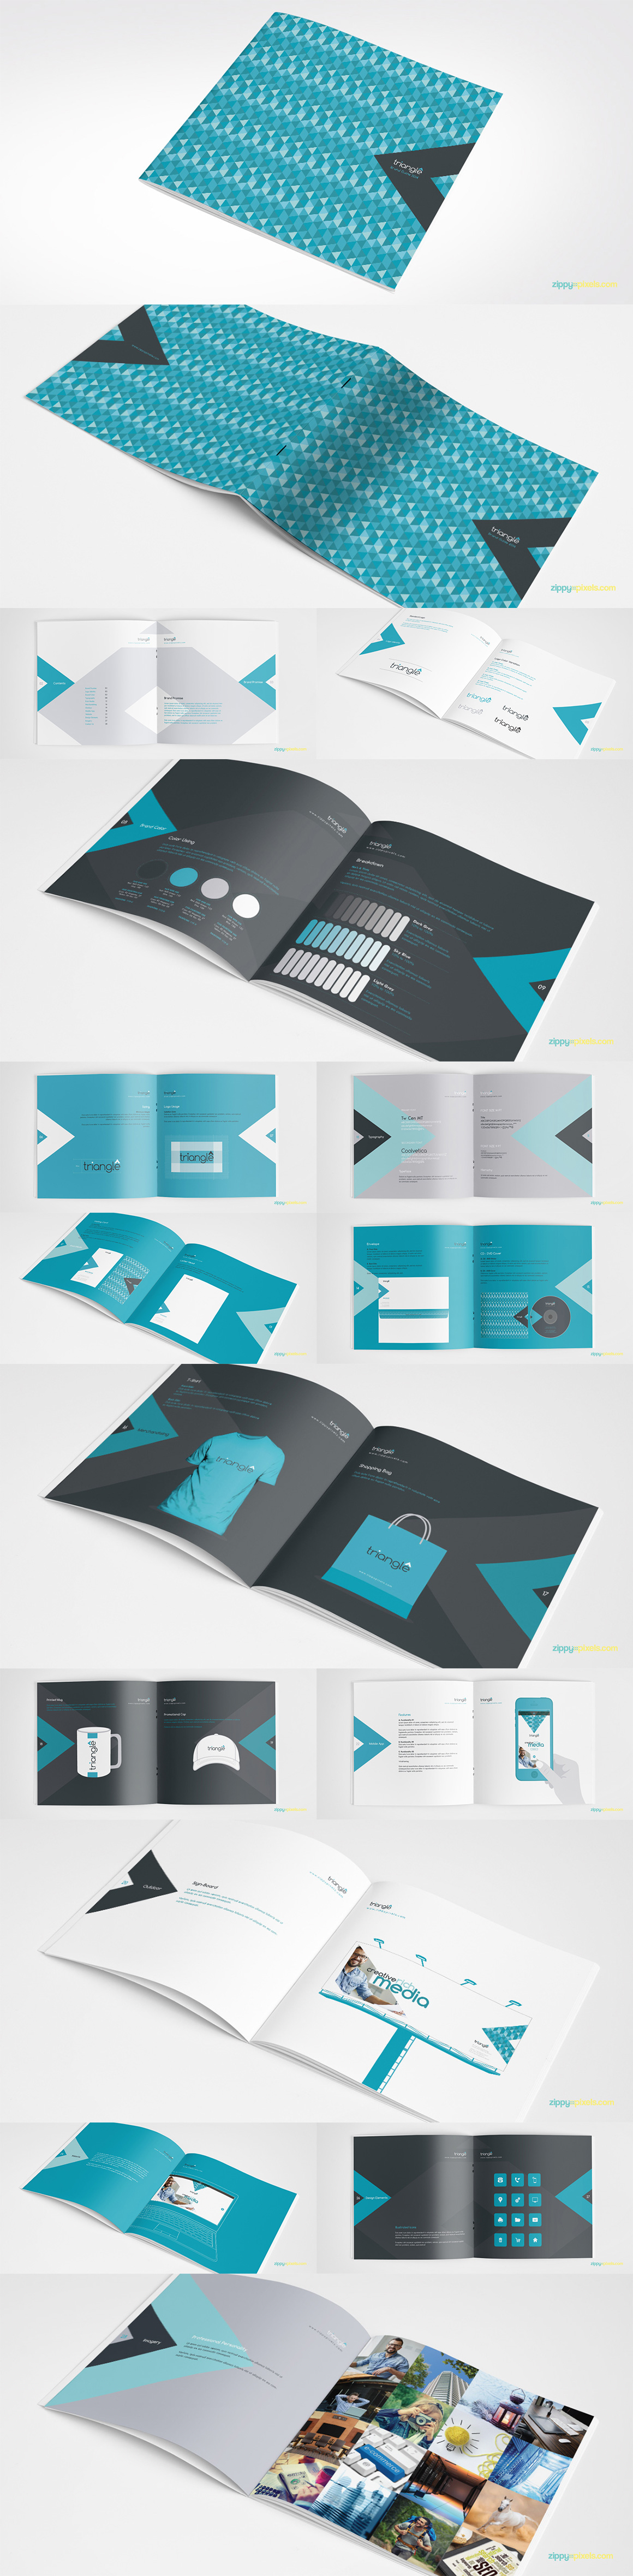 Style Guide & Brand Book Templates-strip11